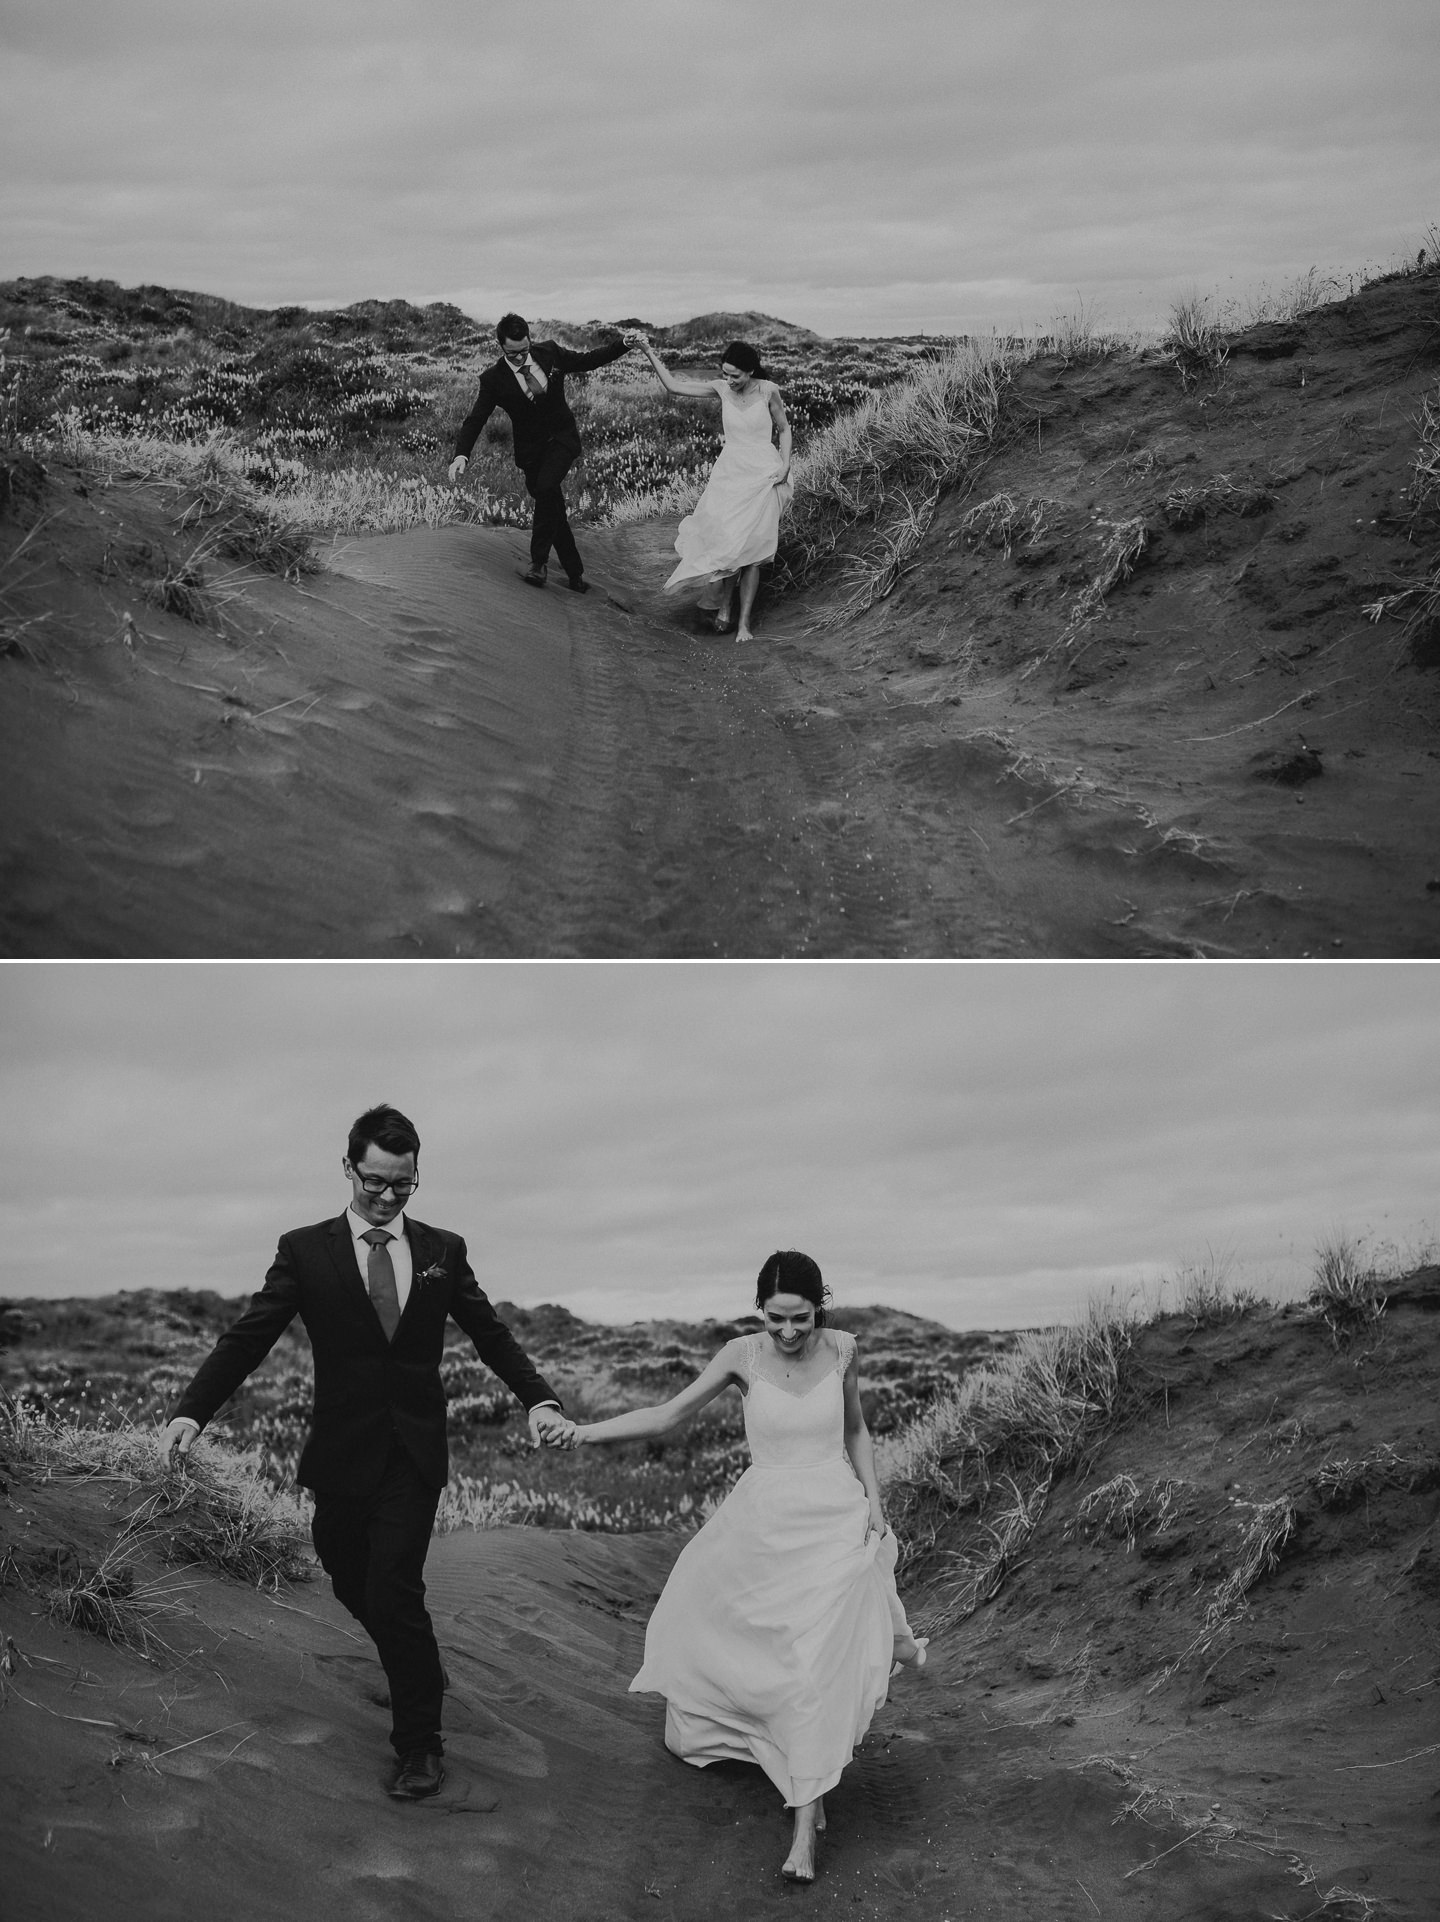 Bride and groom playing on sand dunes